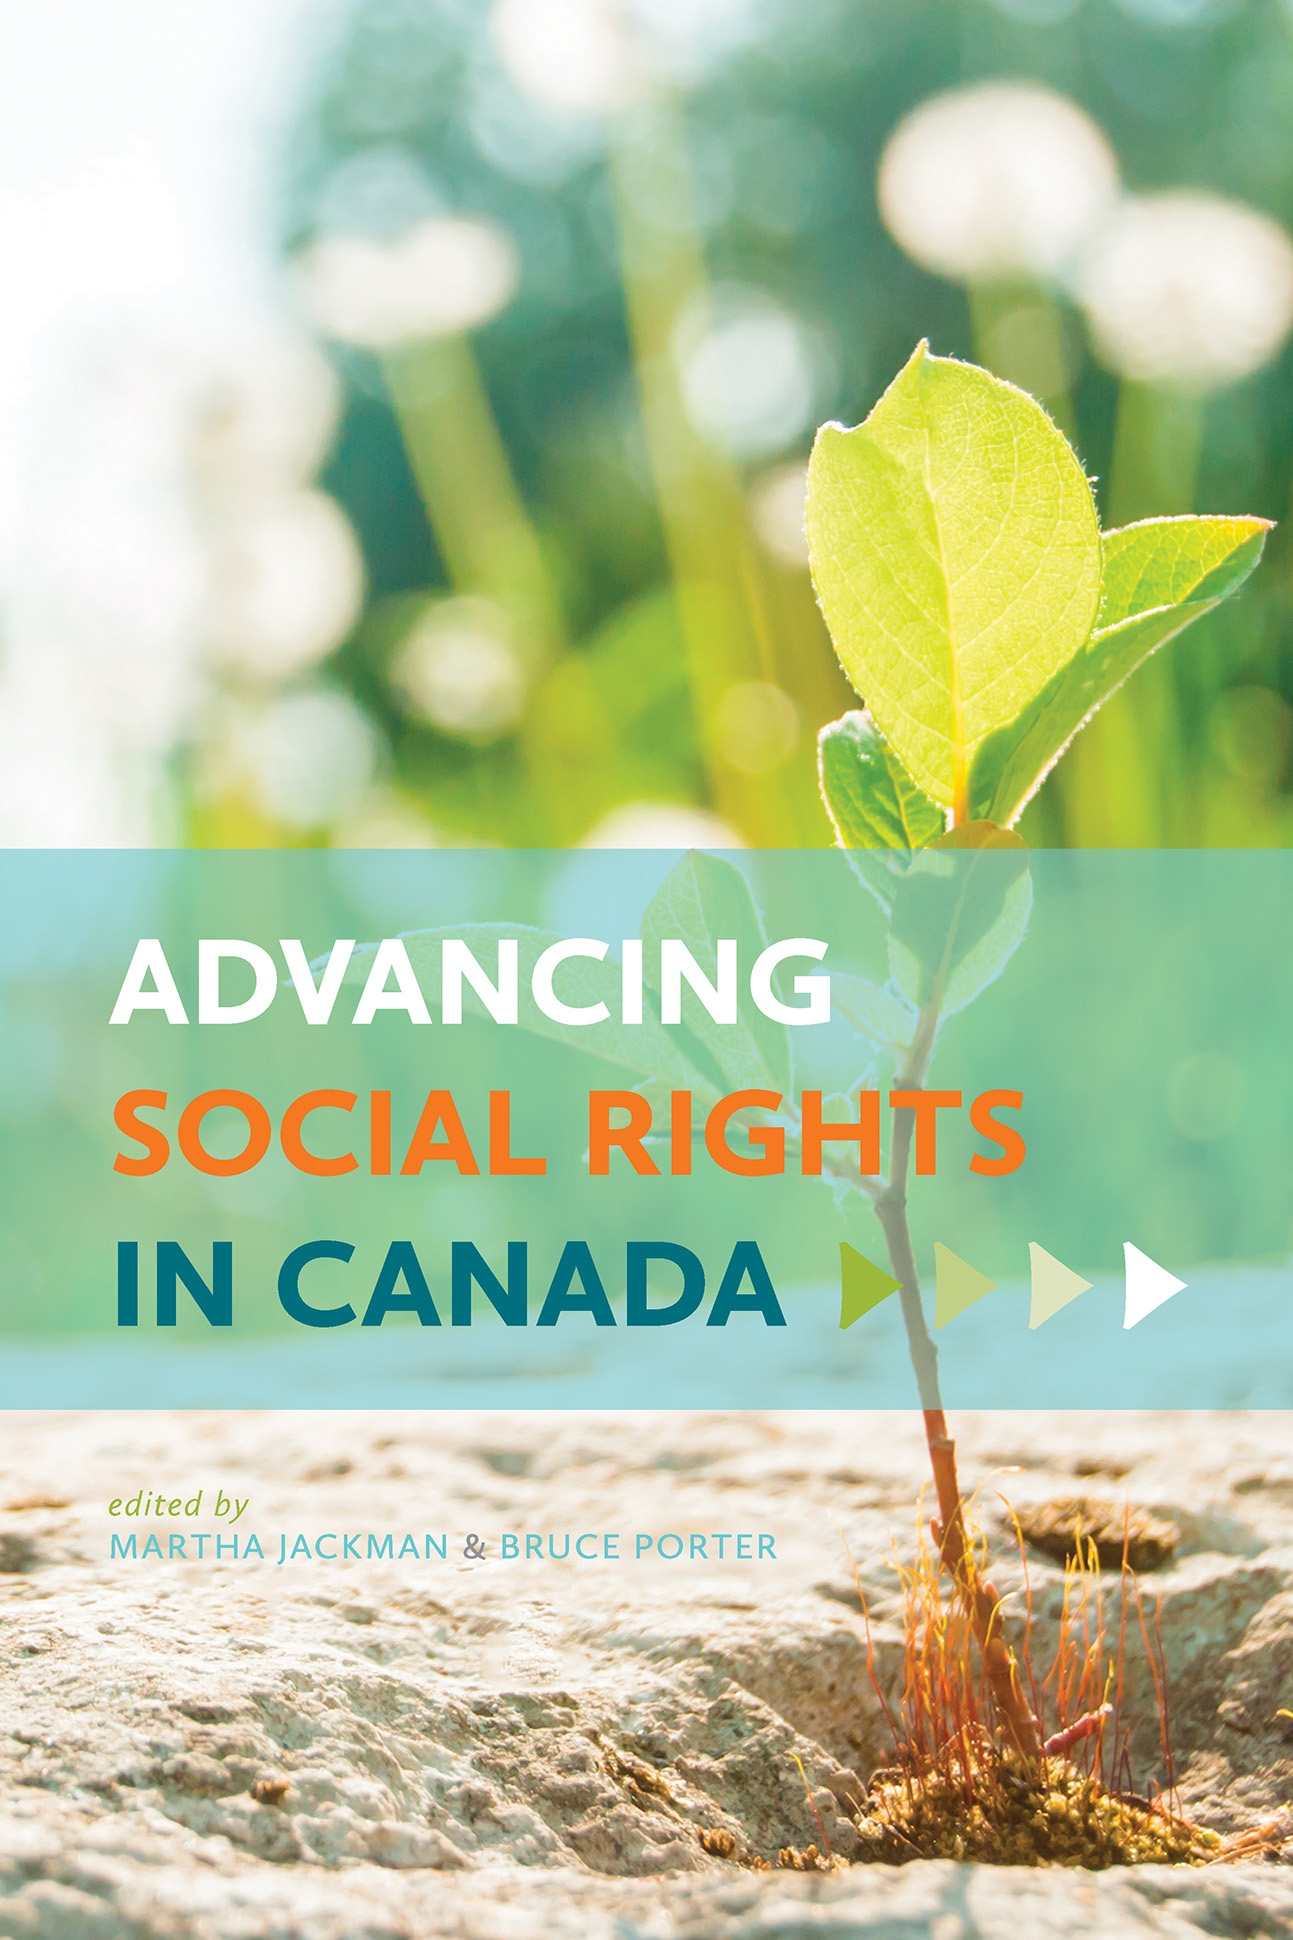 Advancing Social Rights in Canada